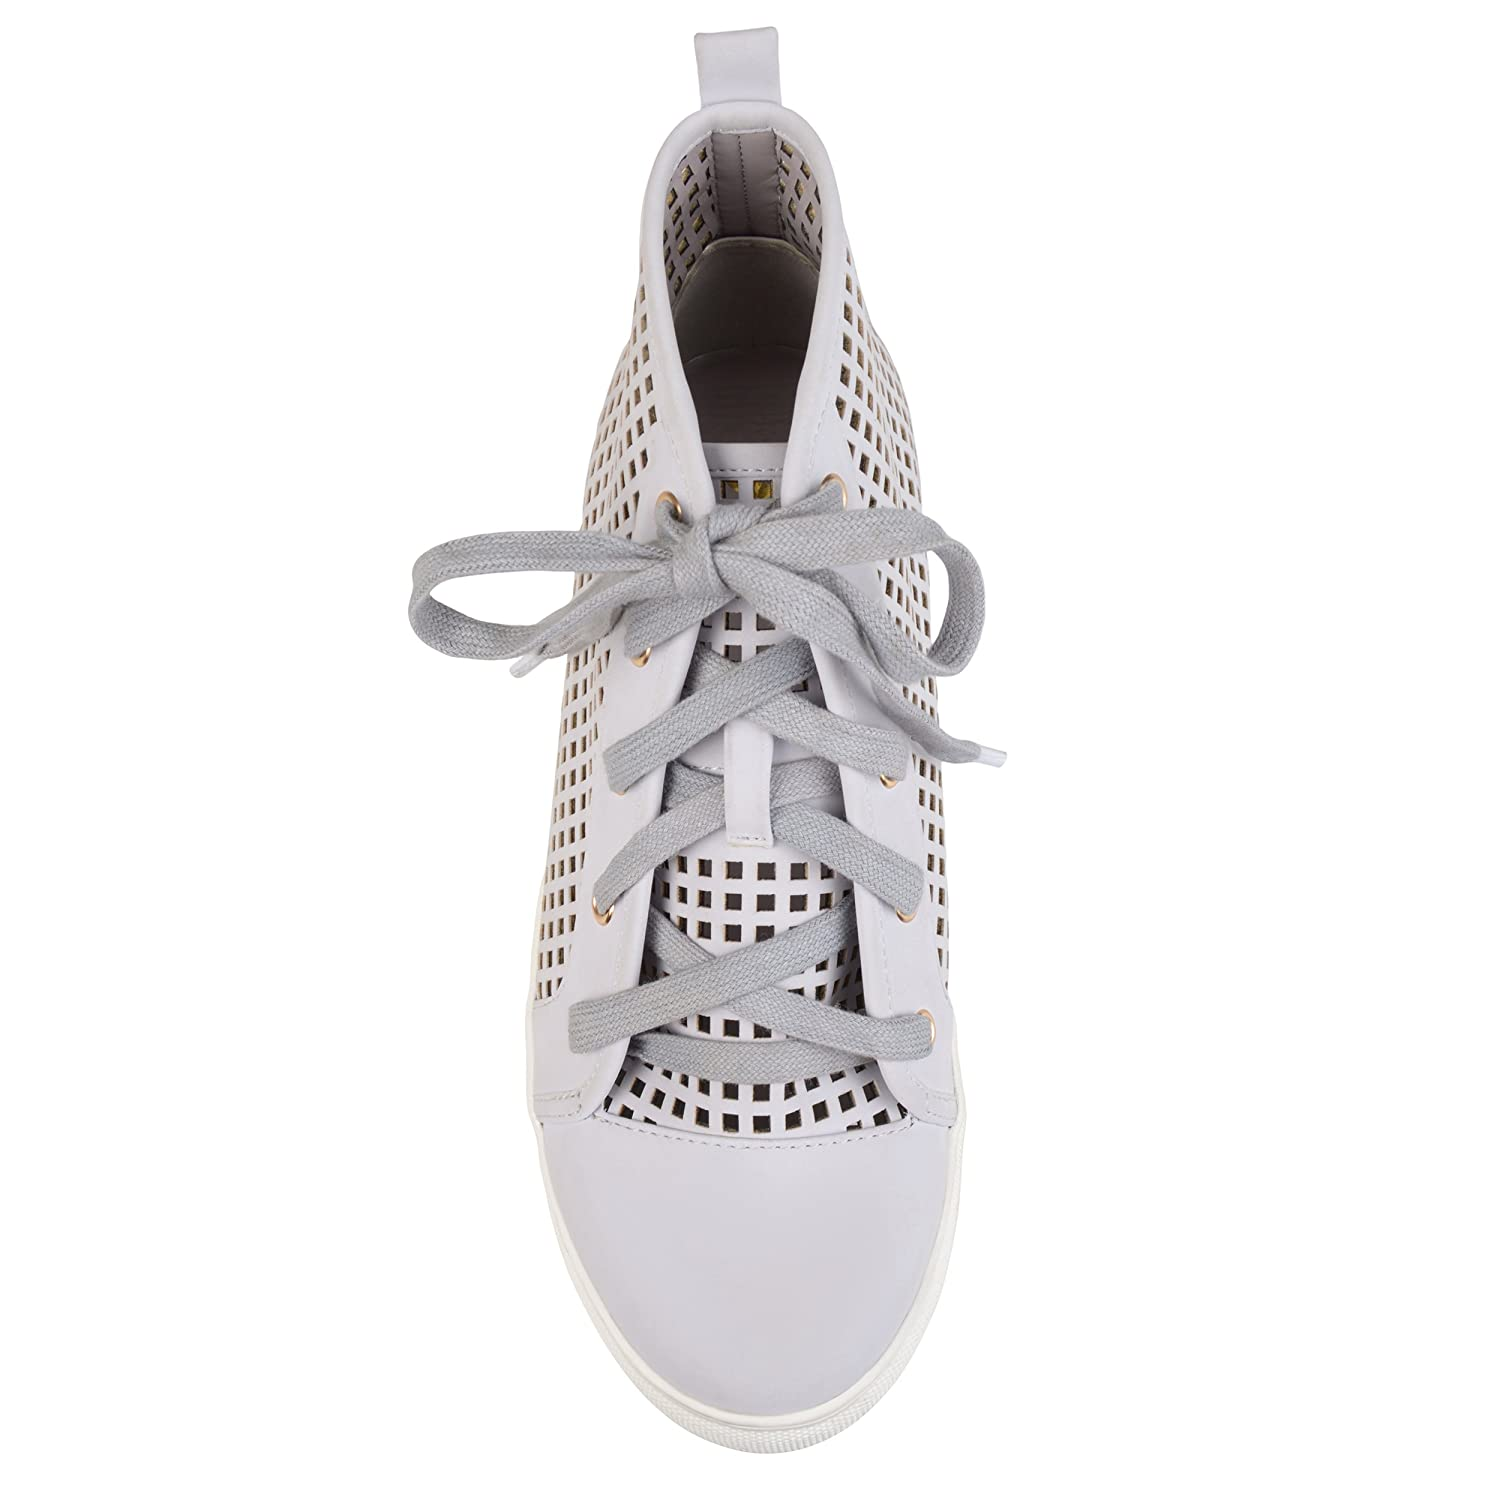 Brinley Co Womens Faux Leather High-Top Lace-up Laser-Cut Sneakers B073RRY2XB 7.5 B(M) US|Grey